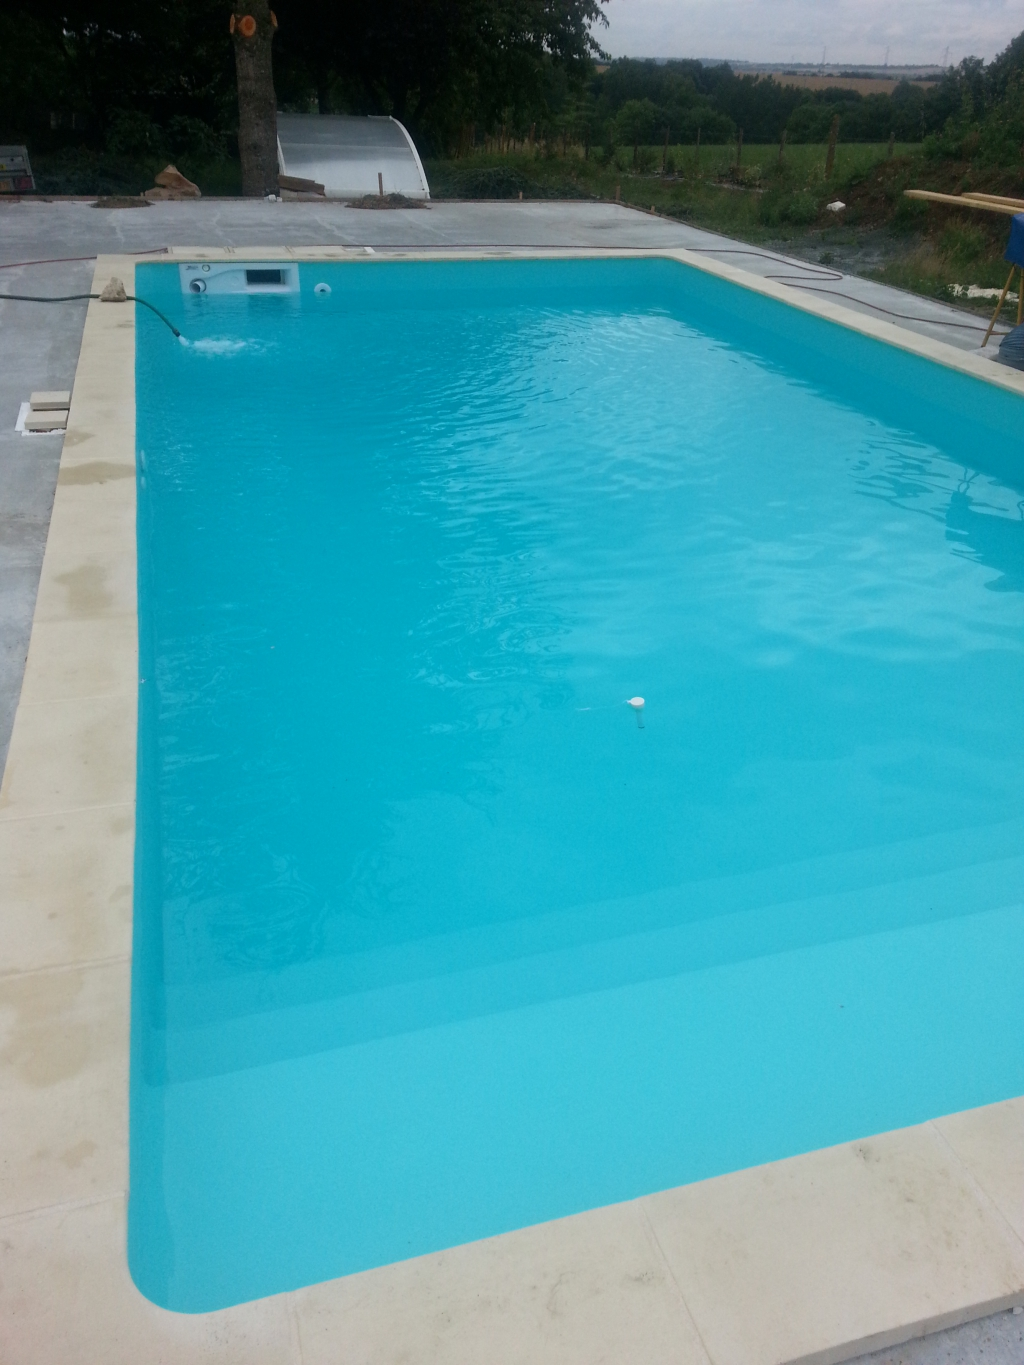 Le remplissage temps attendu 36 h auto construction for Auto construction piscine